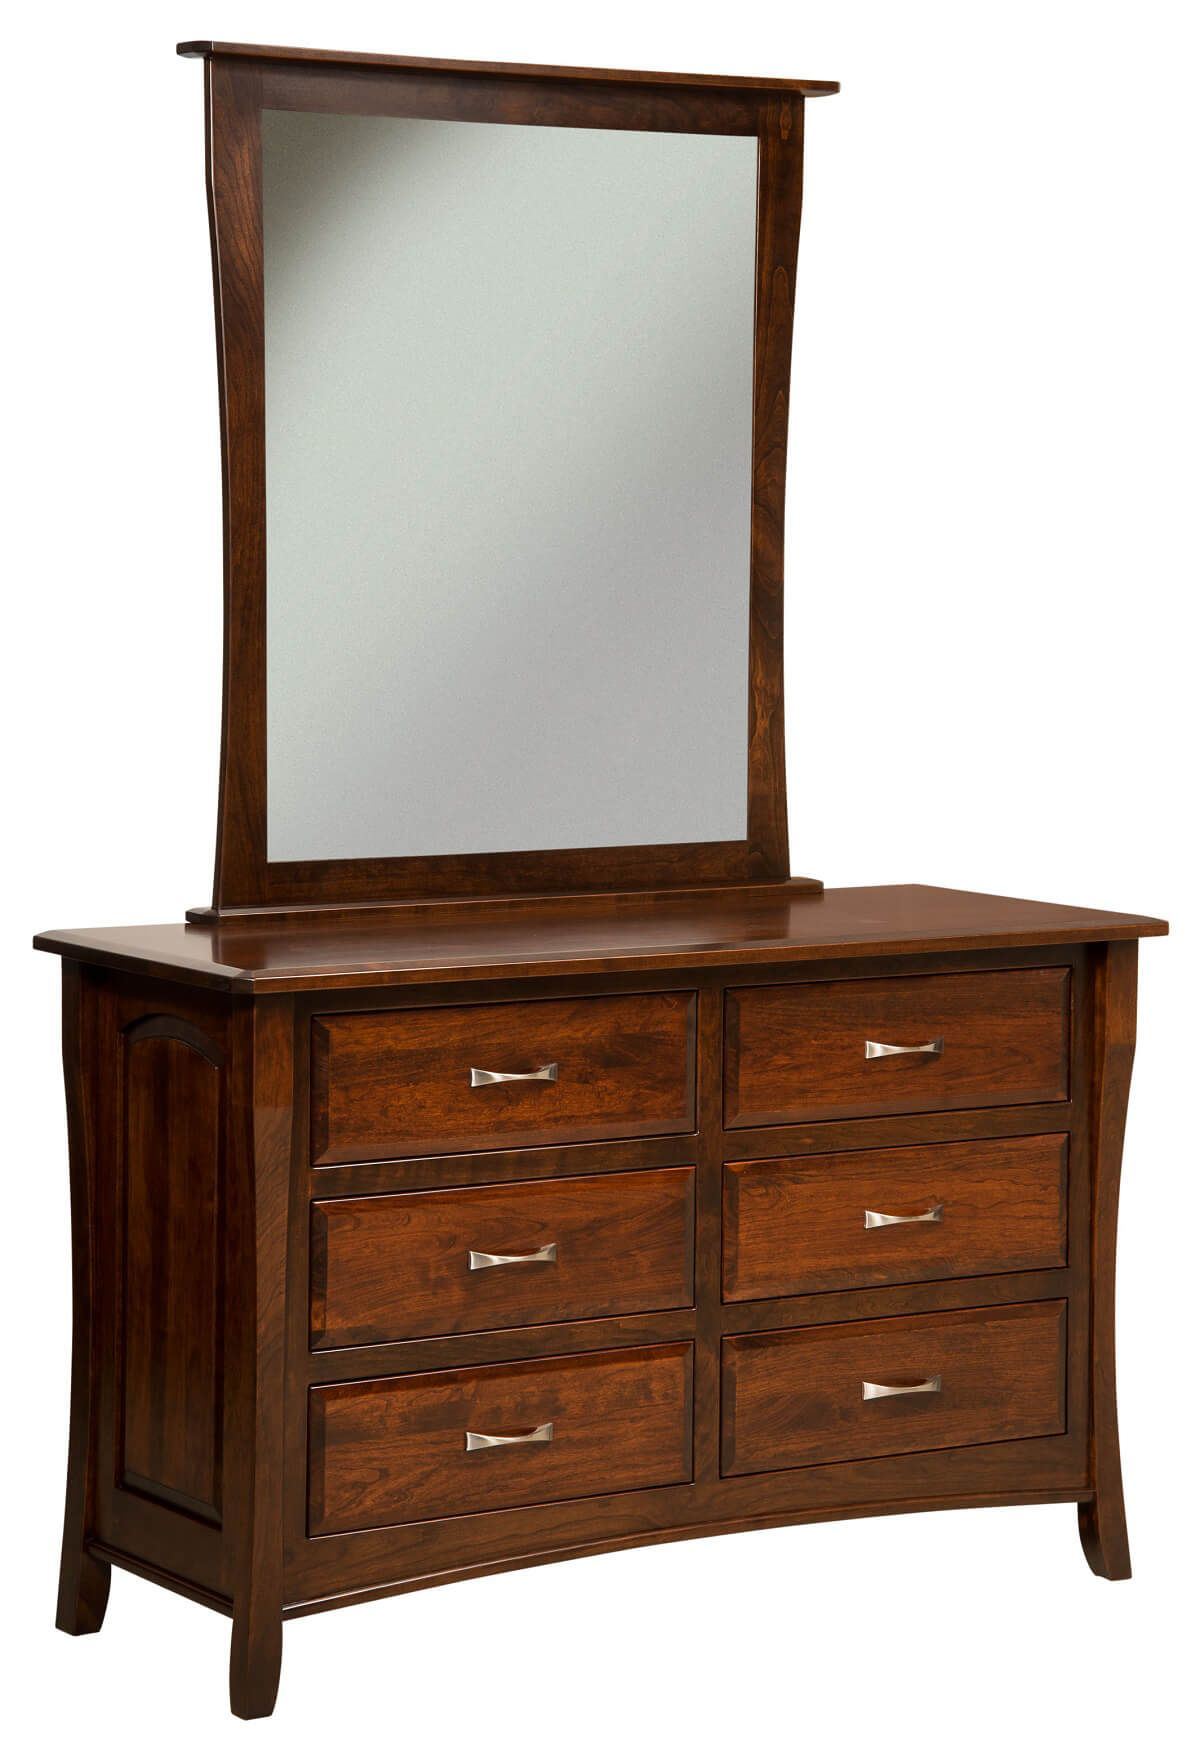 Luxembourg Bedroom Dresser with Mirror